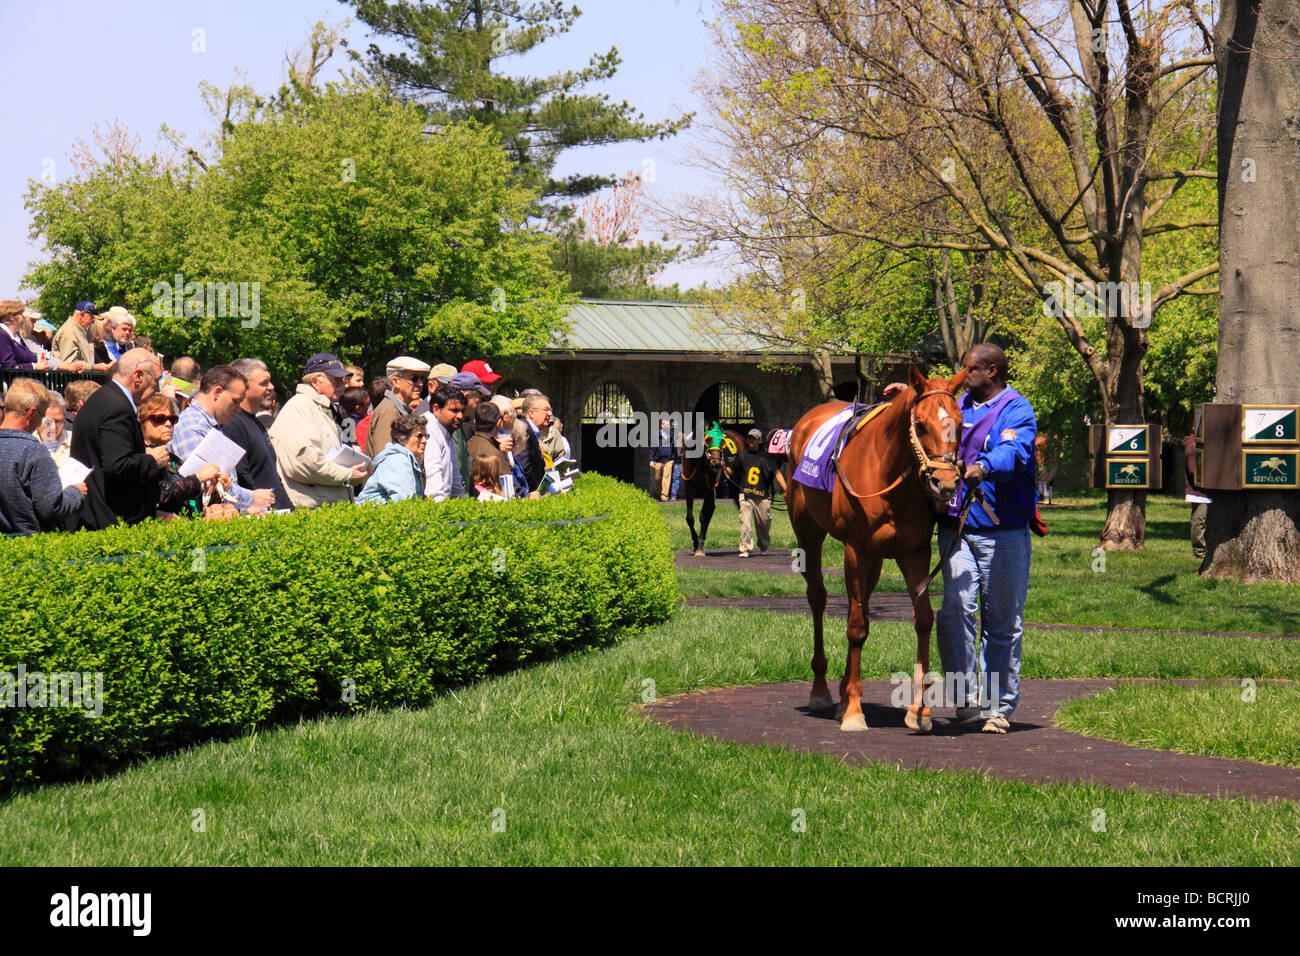 Spectators watch thoroughbreds warm up in paddock before a race at Keeneland Race Course Lexington Kentucky - Stock Image